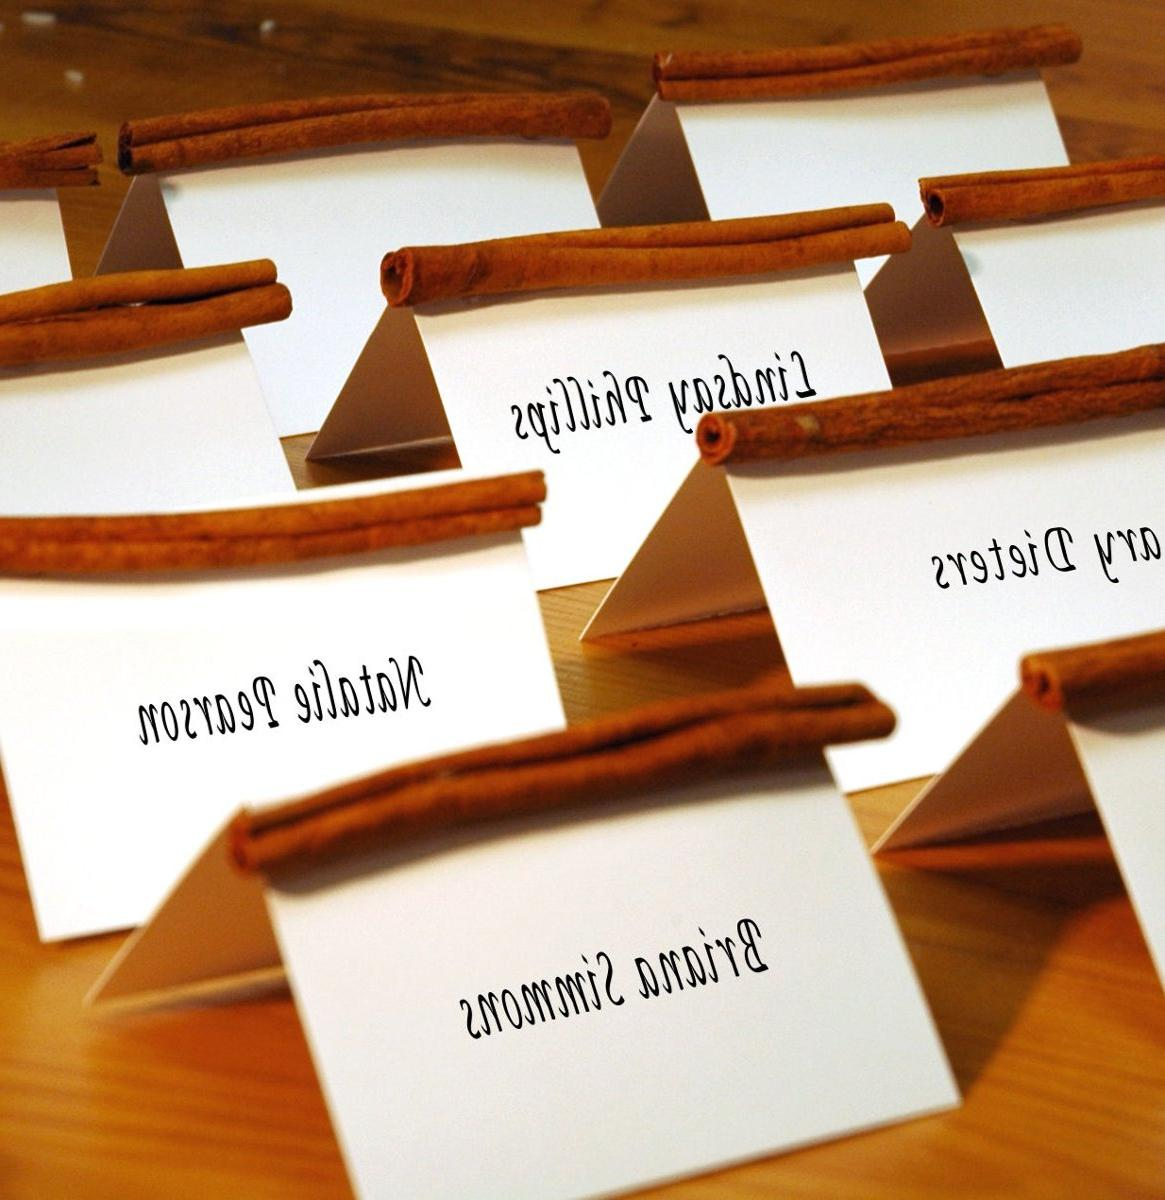 Image 3 of 39. Cinnamon stick place cards are a great holiday or fall touch